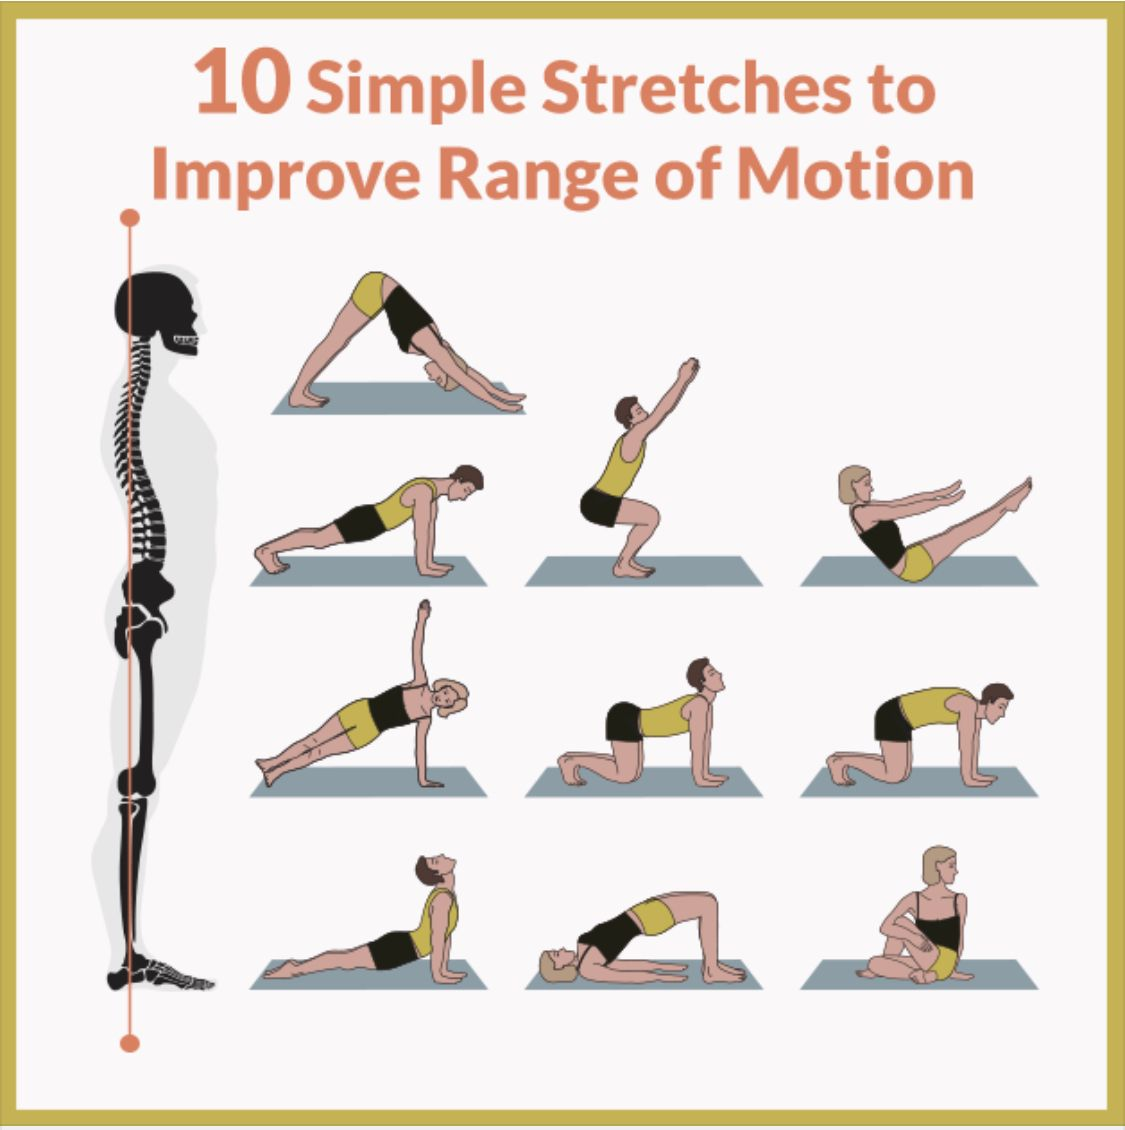 Range Of Motion Stretches Health Motion Health Fitness